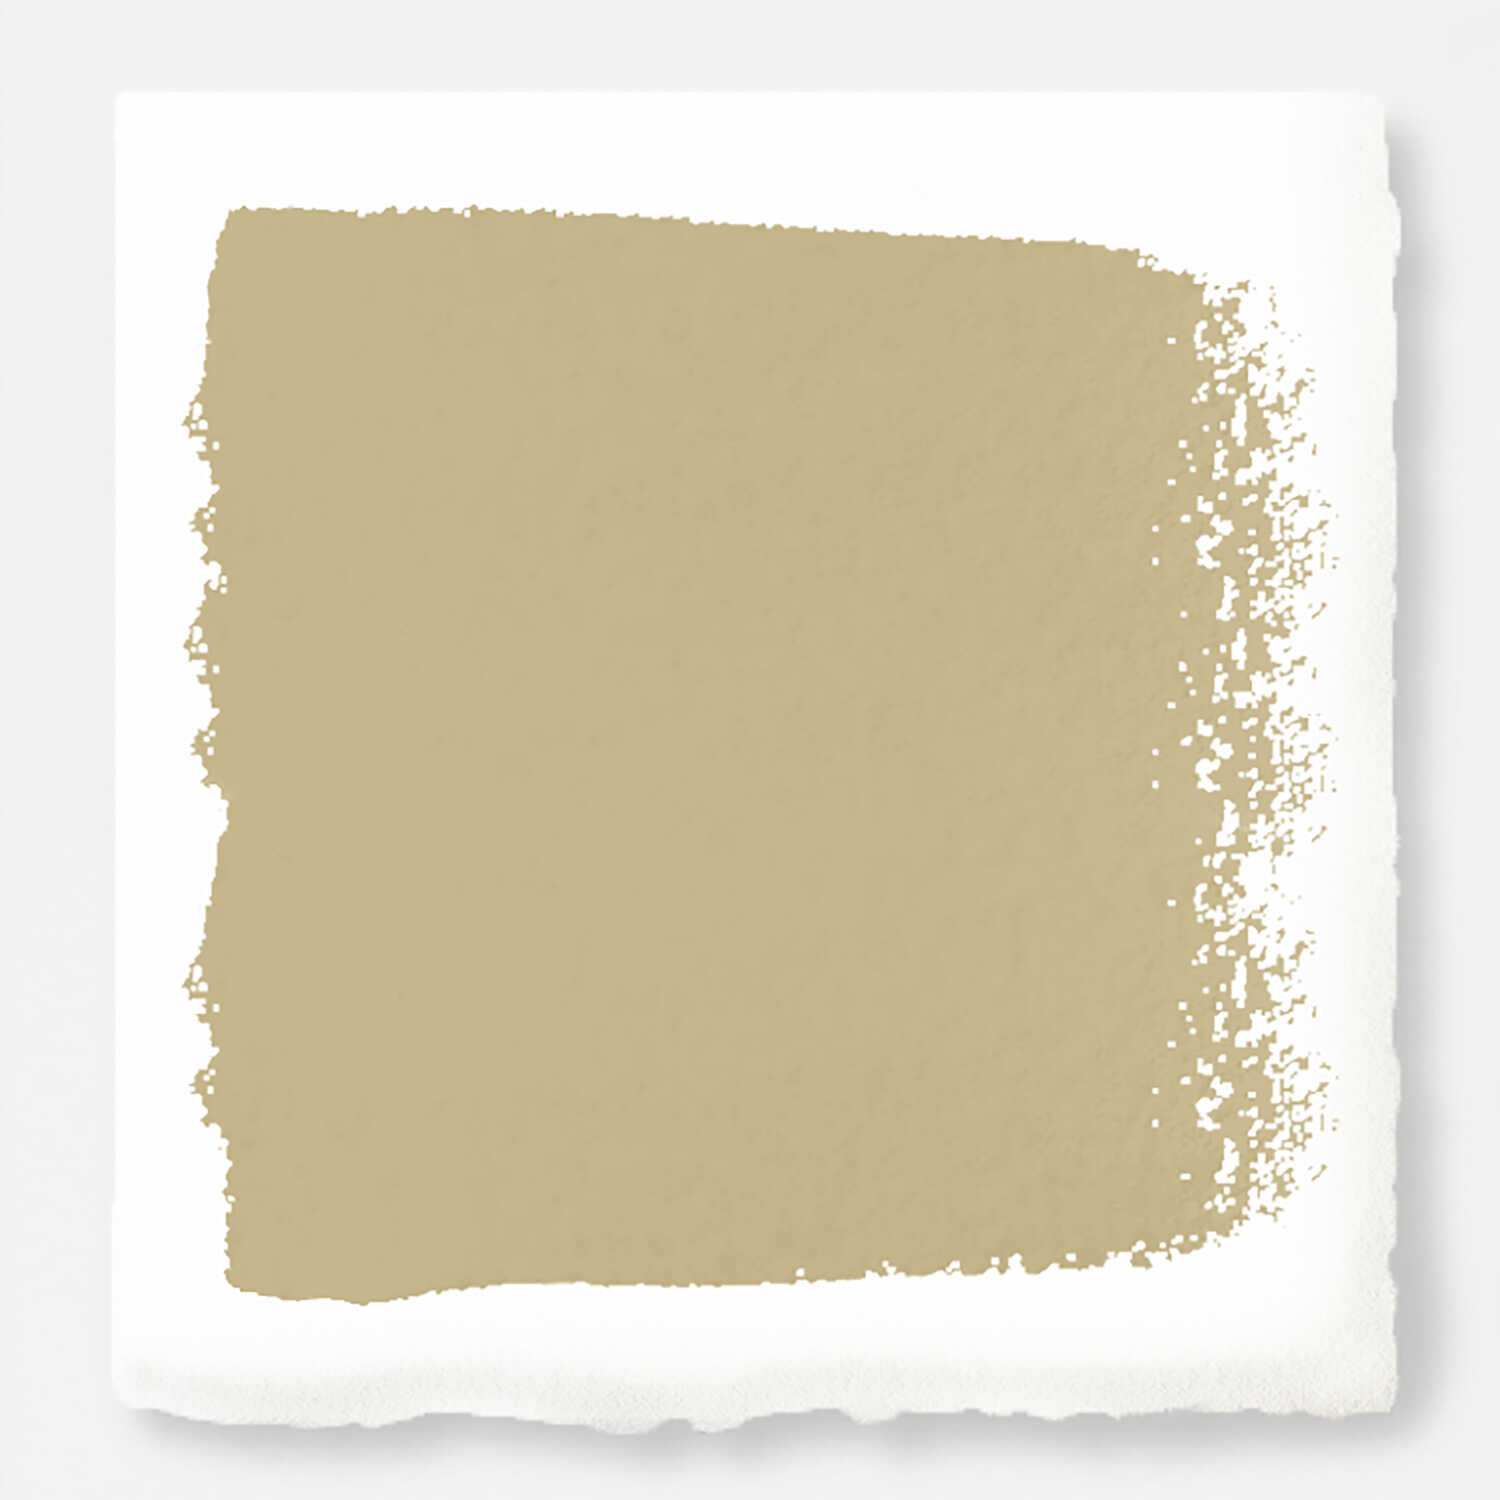 Magnolia Home  Summer Pear  Semi-Gloss  Exterior Paint and Primer  1 gal.